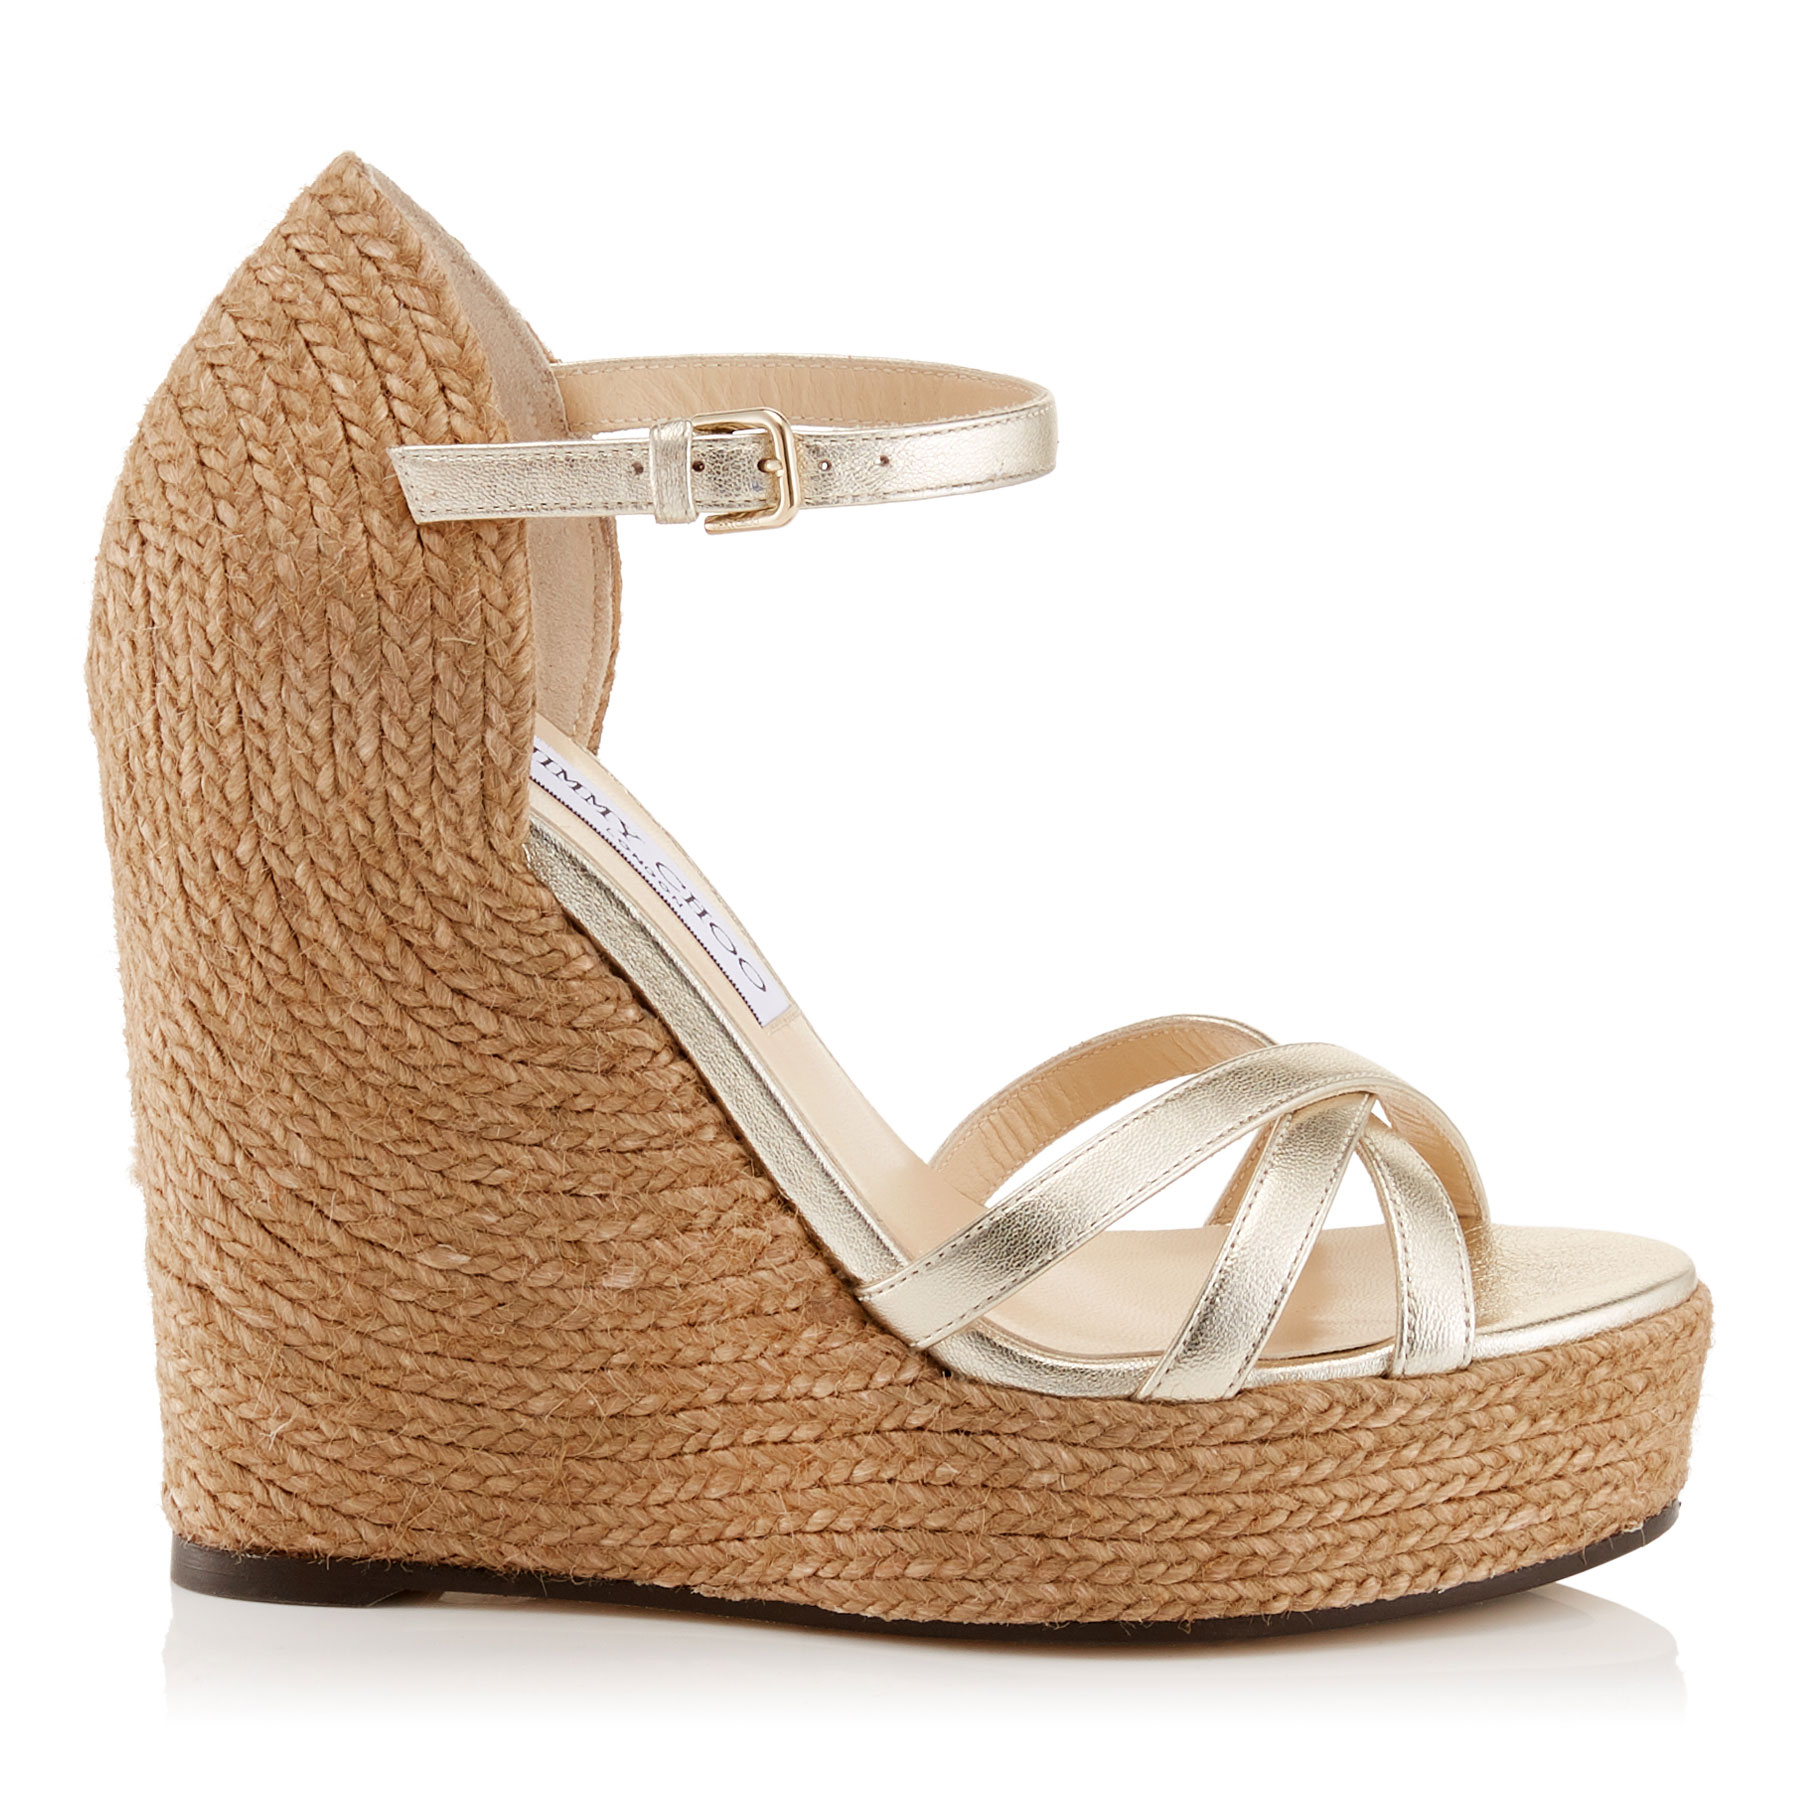 DELANEY 125 Champagne Washed Metallic Nappa Leather Wedges with Braided Rope Detailing by Jimmy Choo